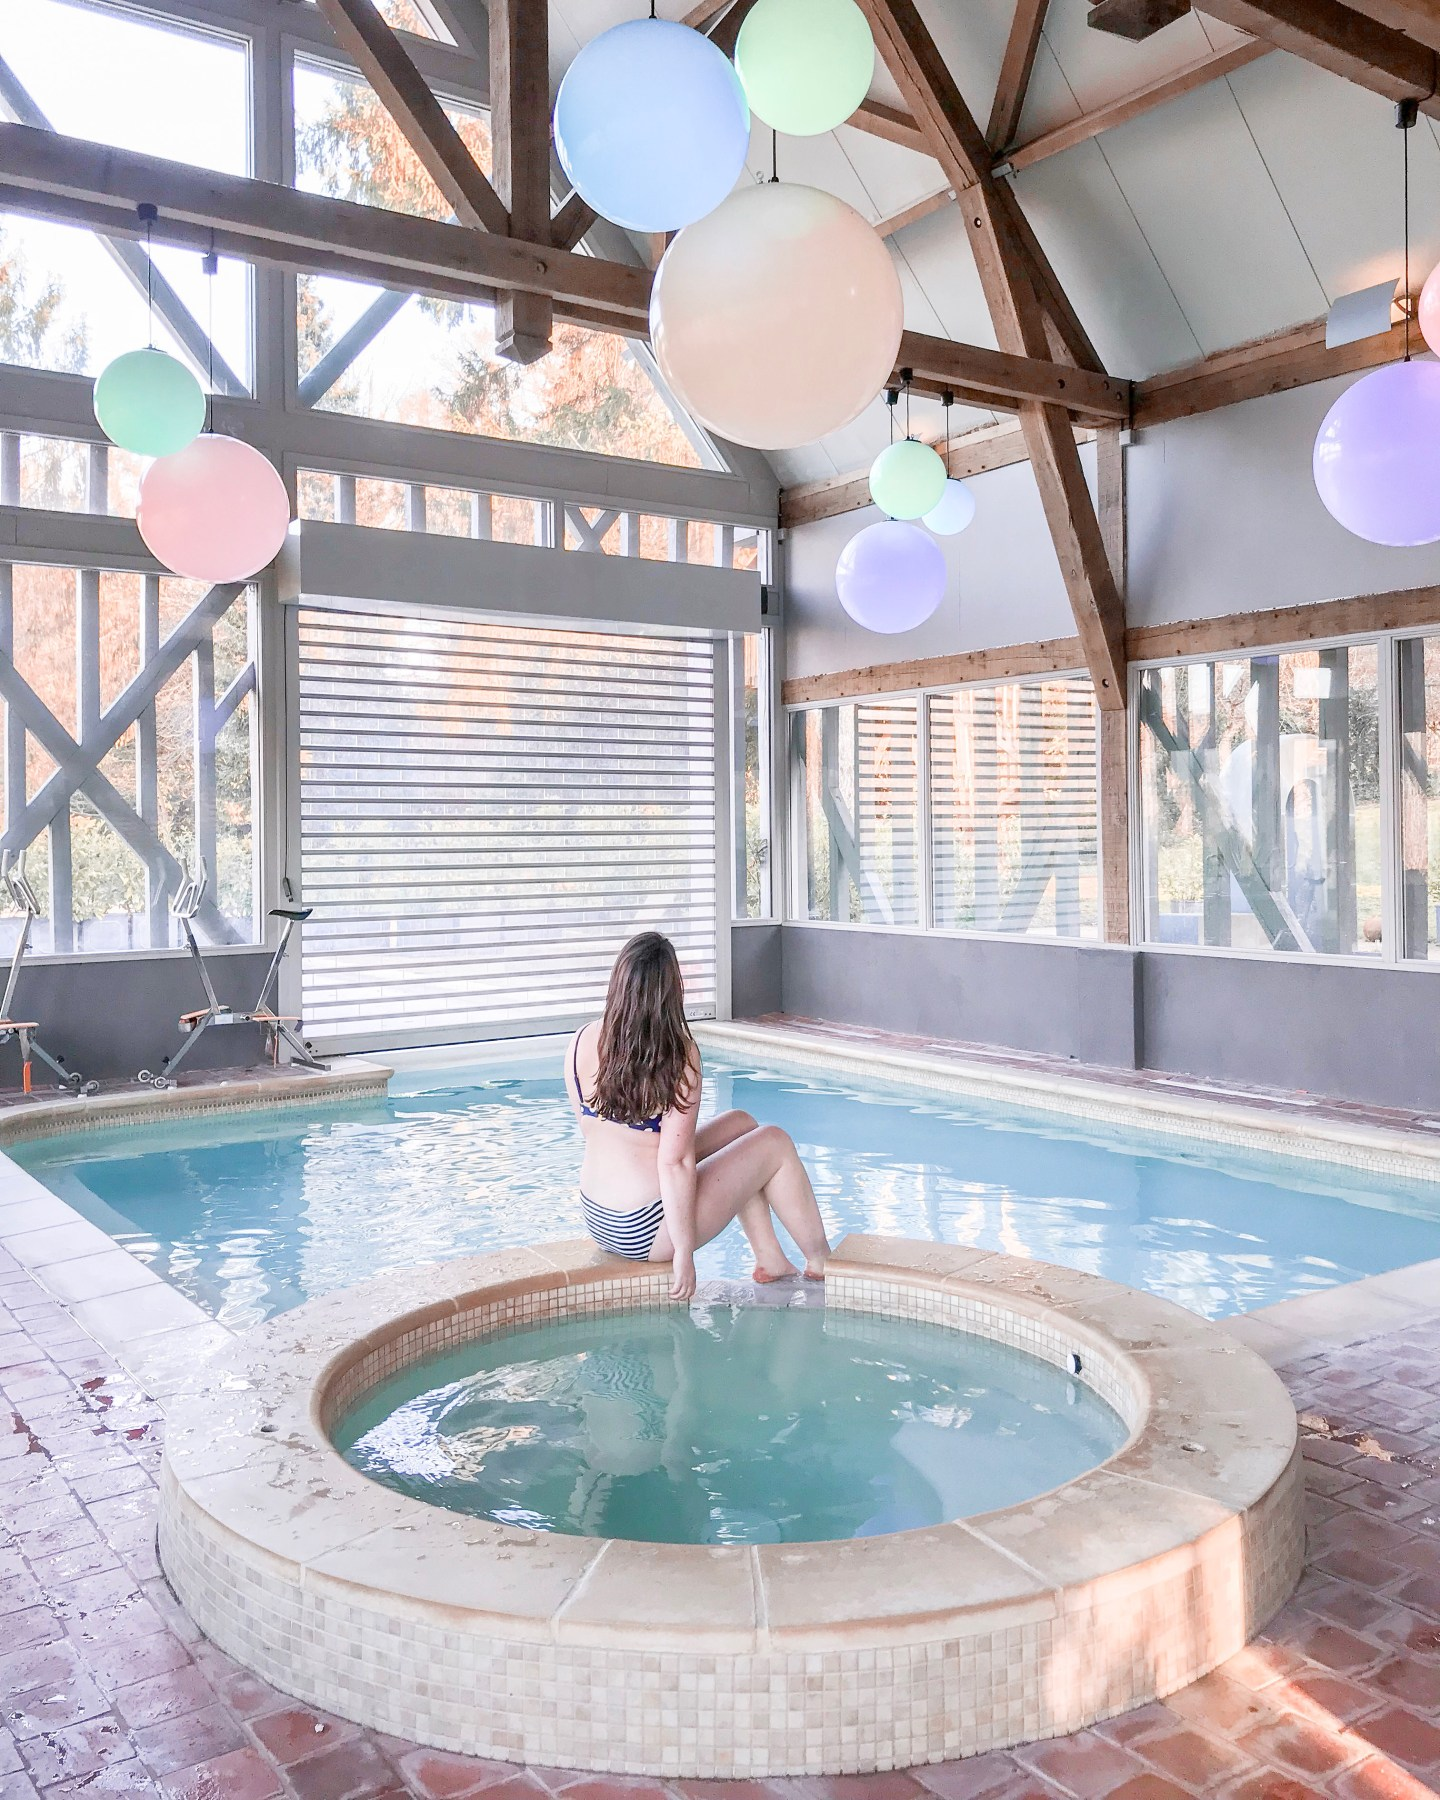 Blog Sophiesmoods Hotels Preference Spa Nuxe Licorne Lyons La Foret